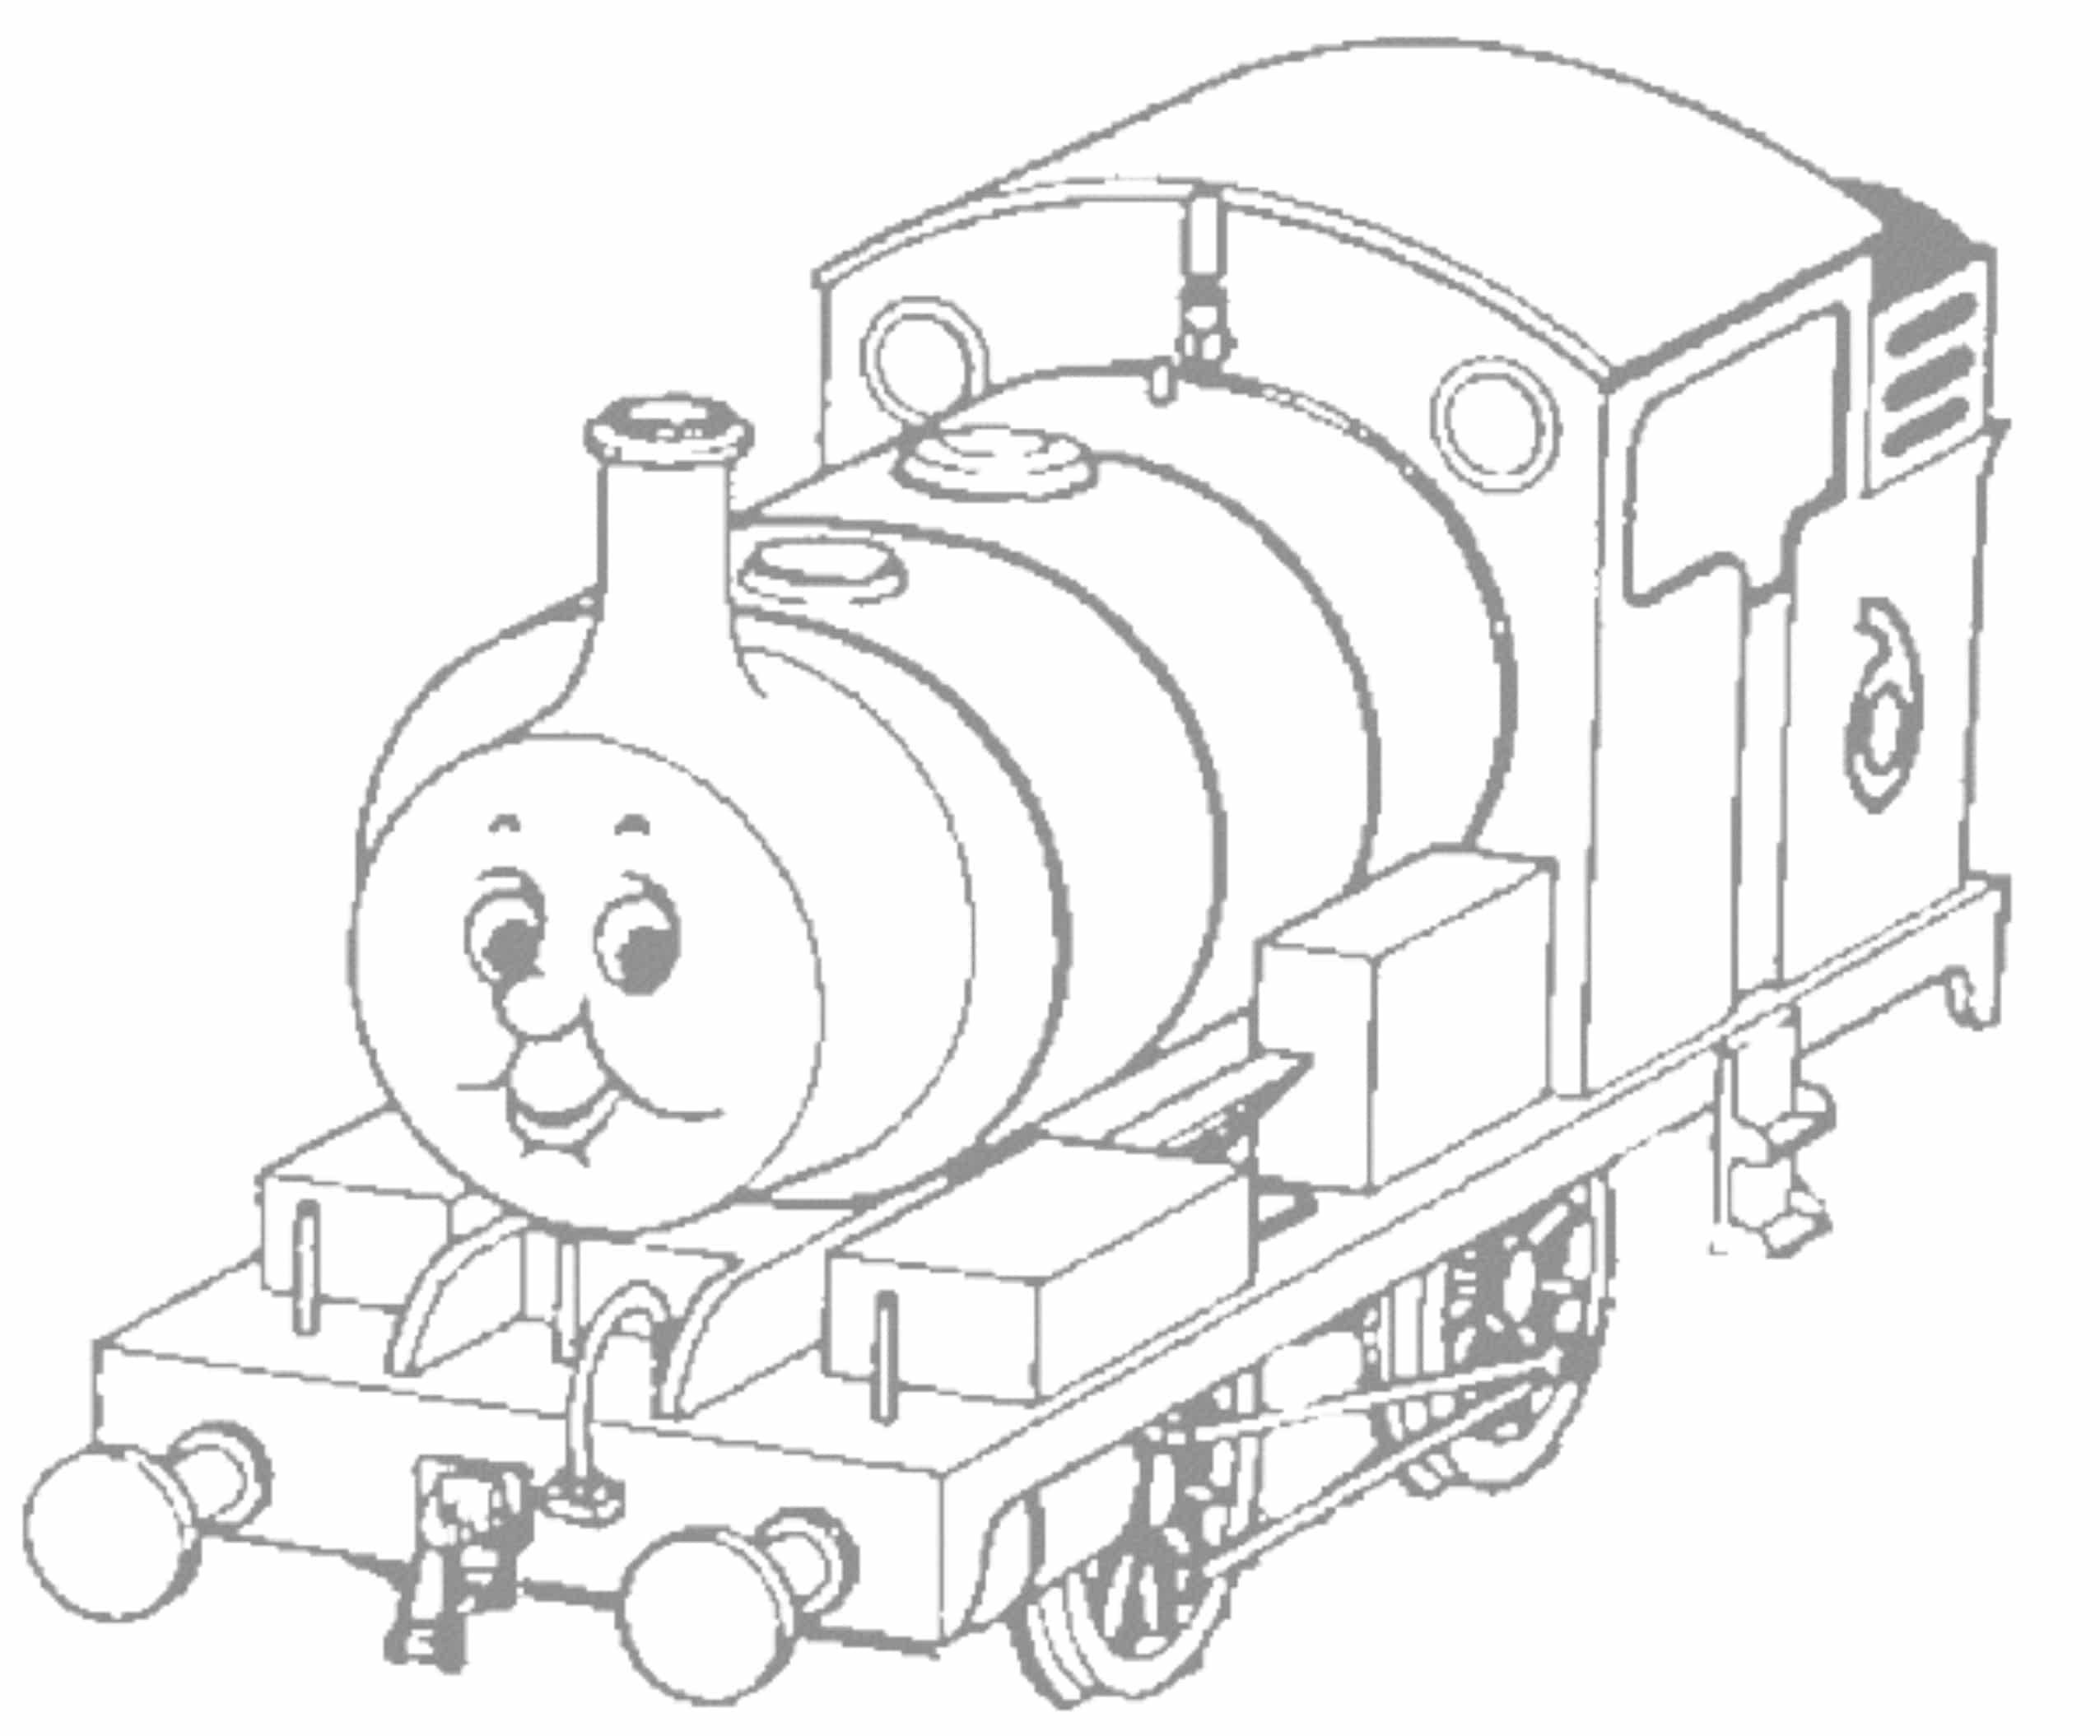 train coloring free printable train coloring pages for kids coloring train 1 1